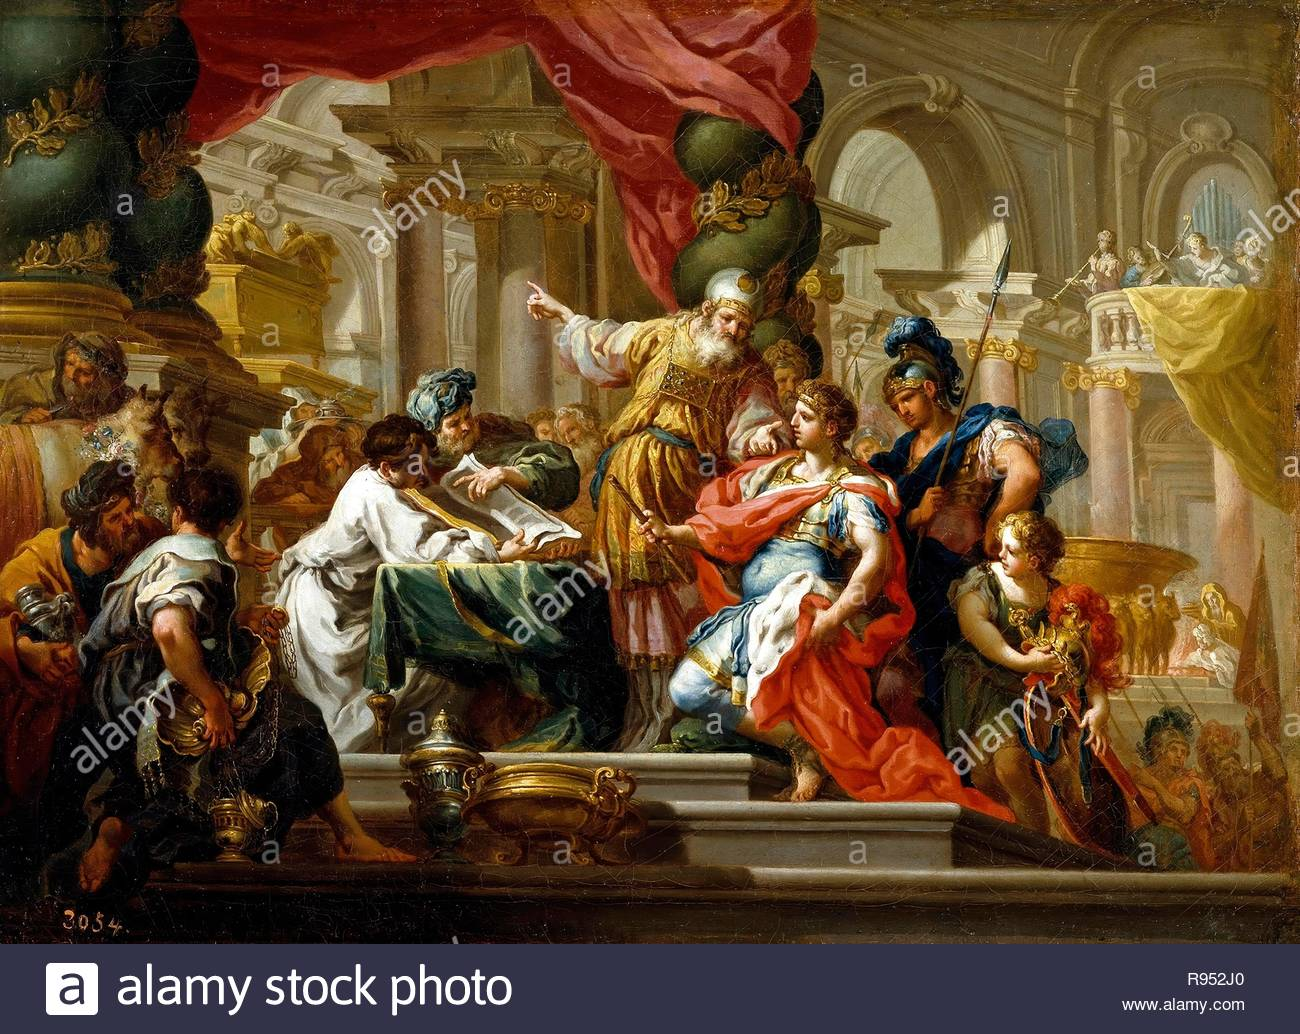 Sebastiano Conca / 'Alexander the Great in the Temple of Jerusalem